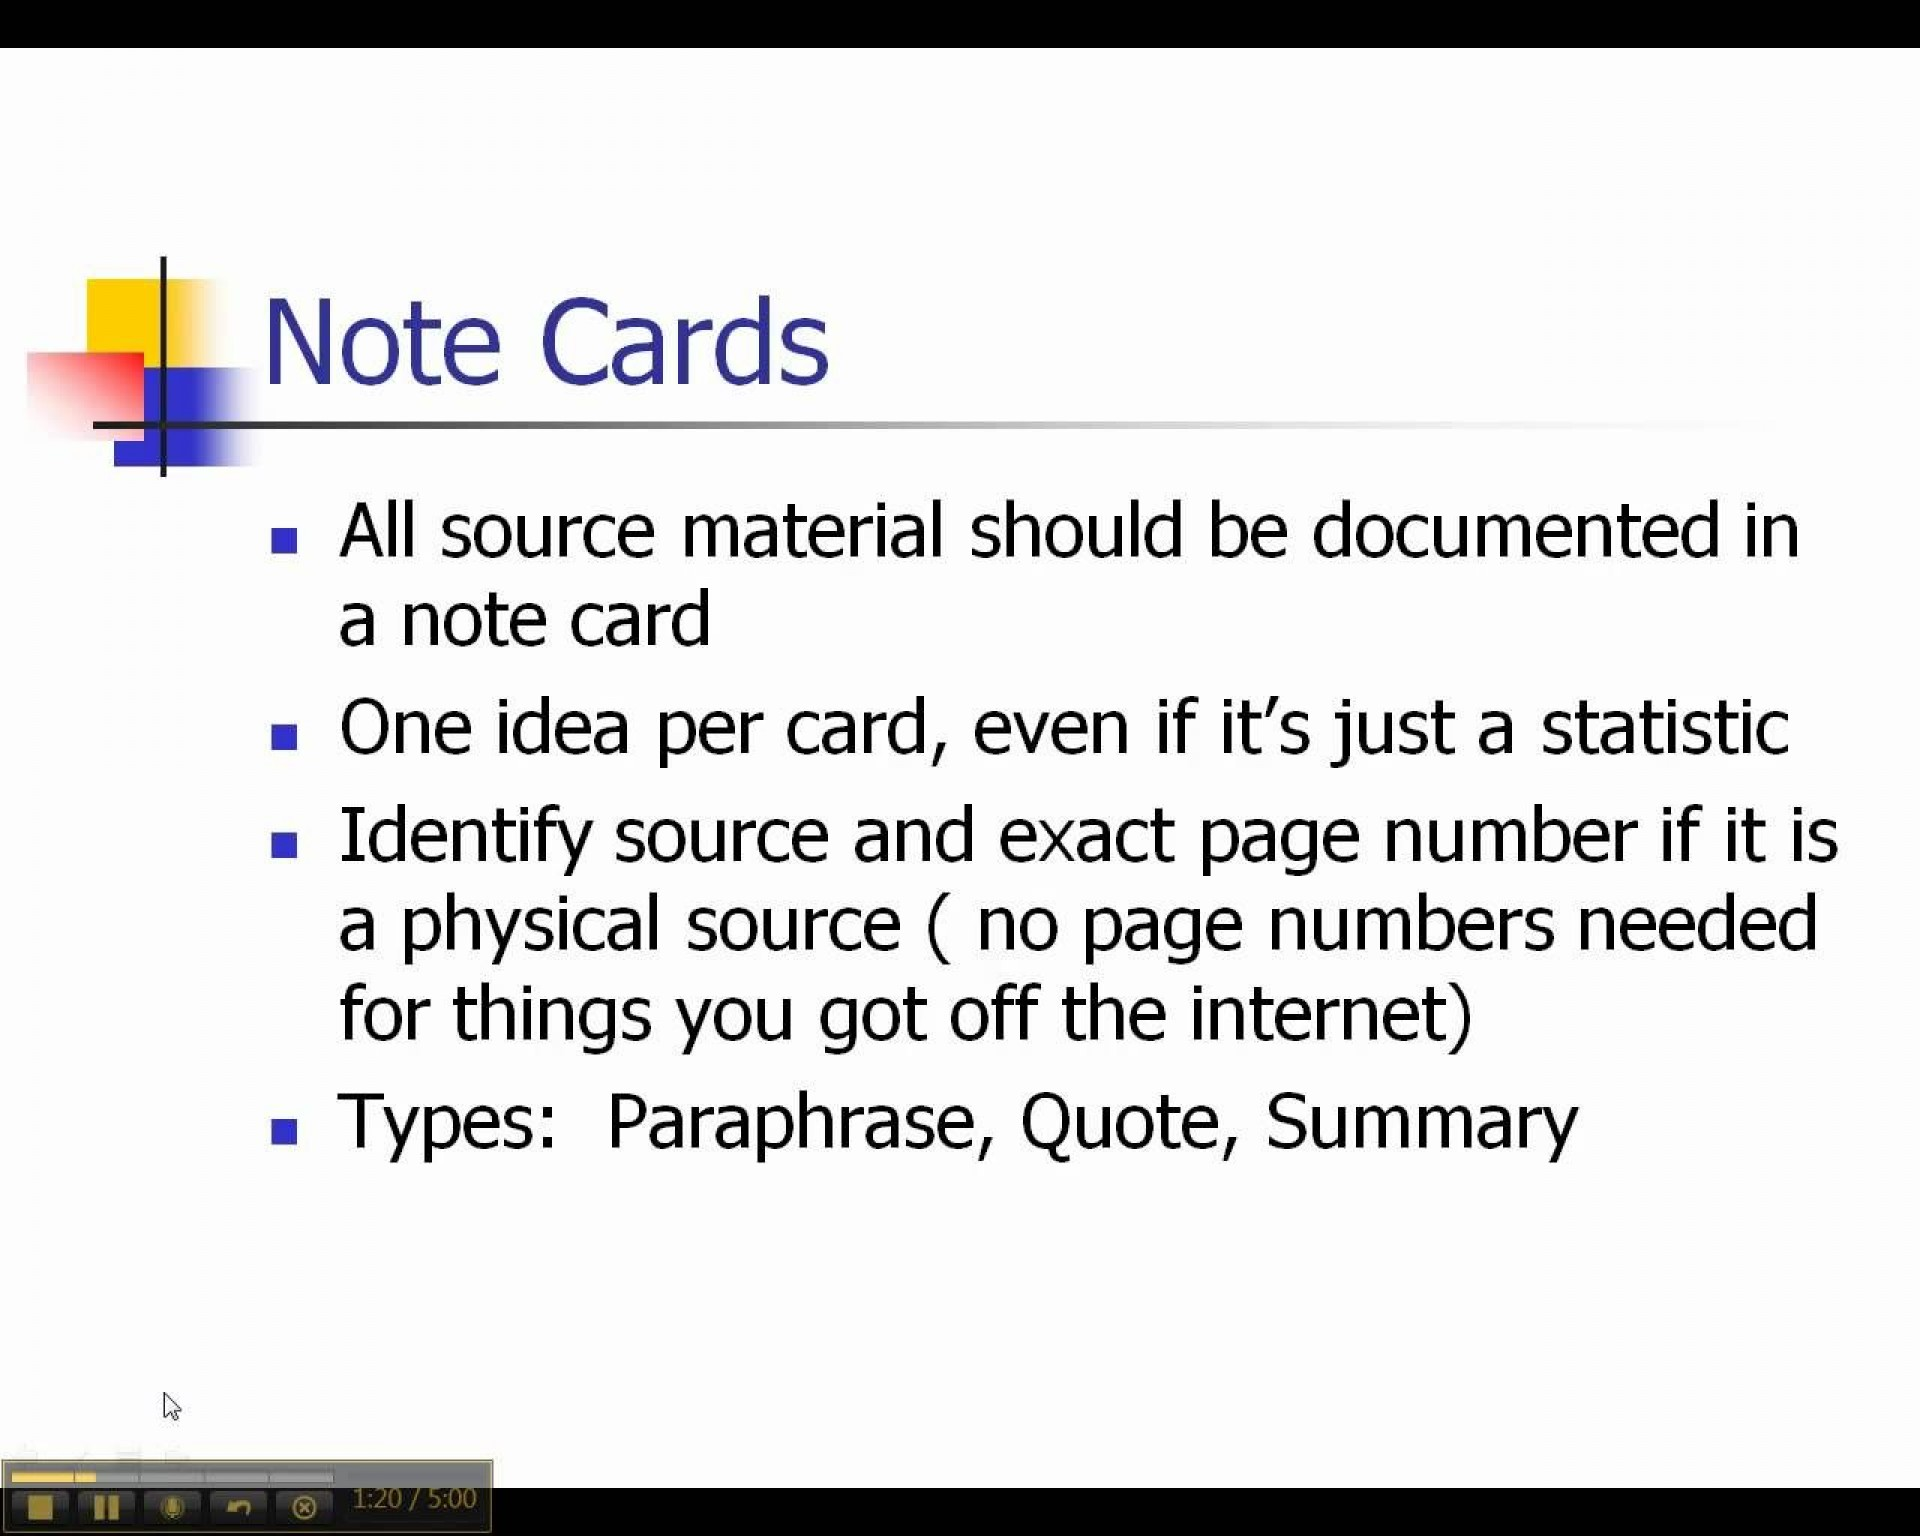 004 Research Paper Notecards For Impressive Papers Sample Mla Online How To Do 1920